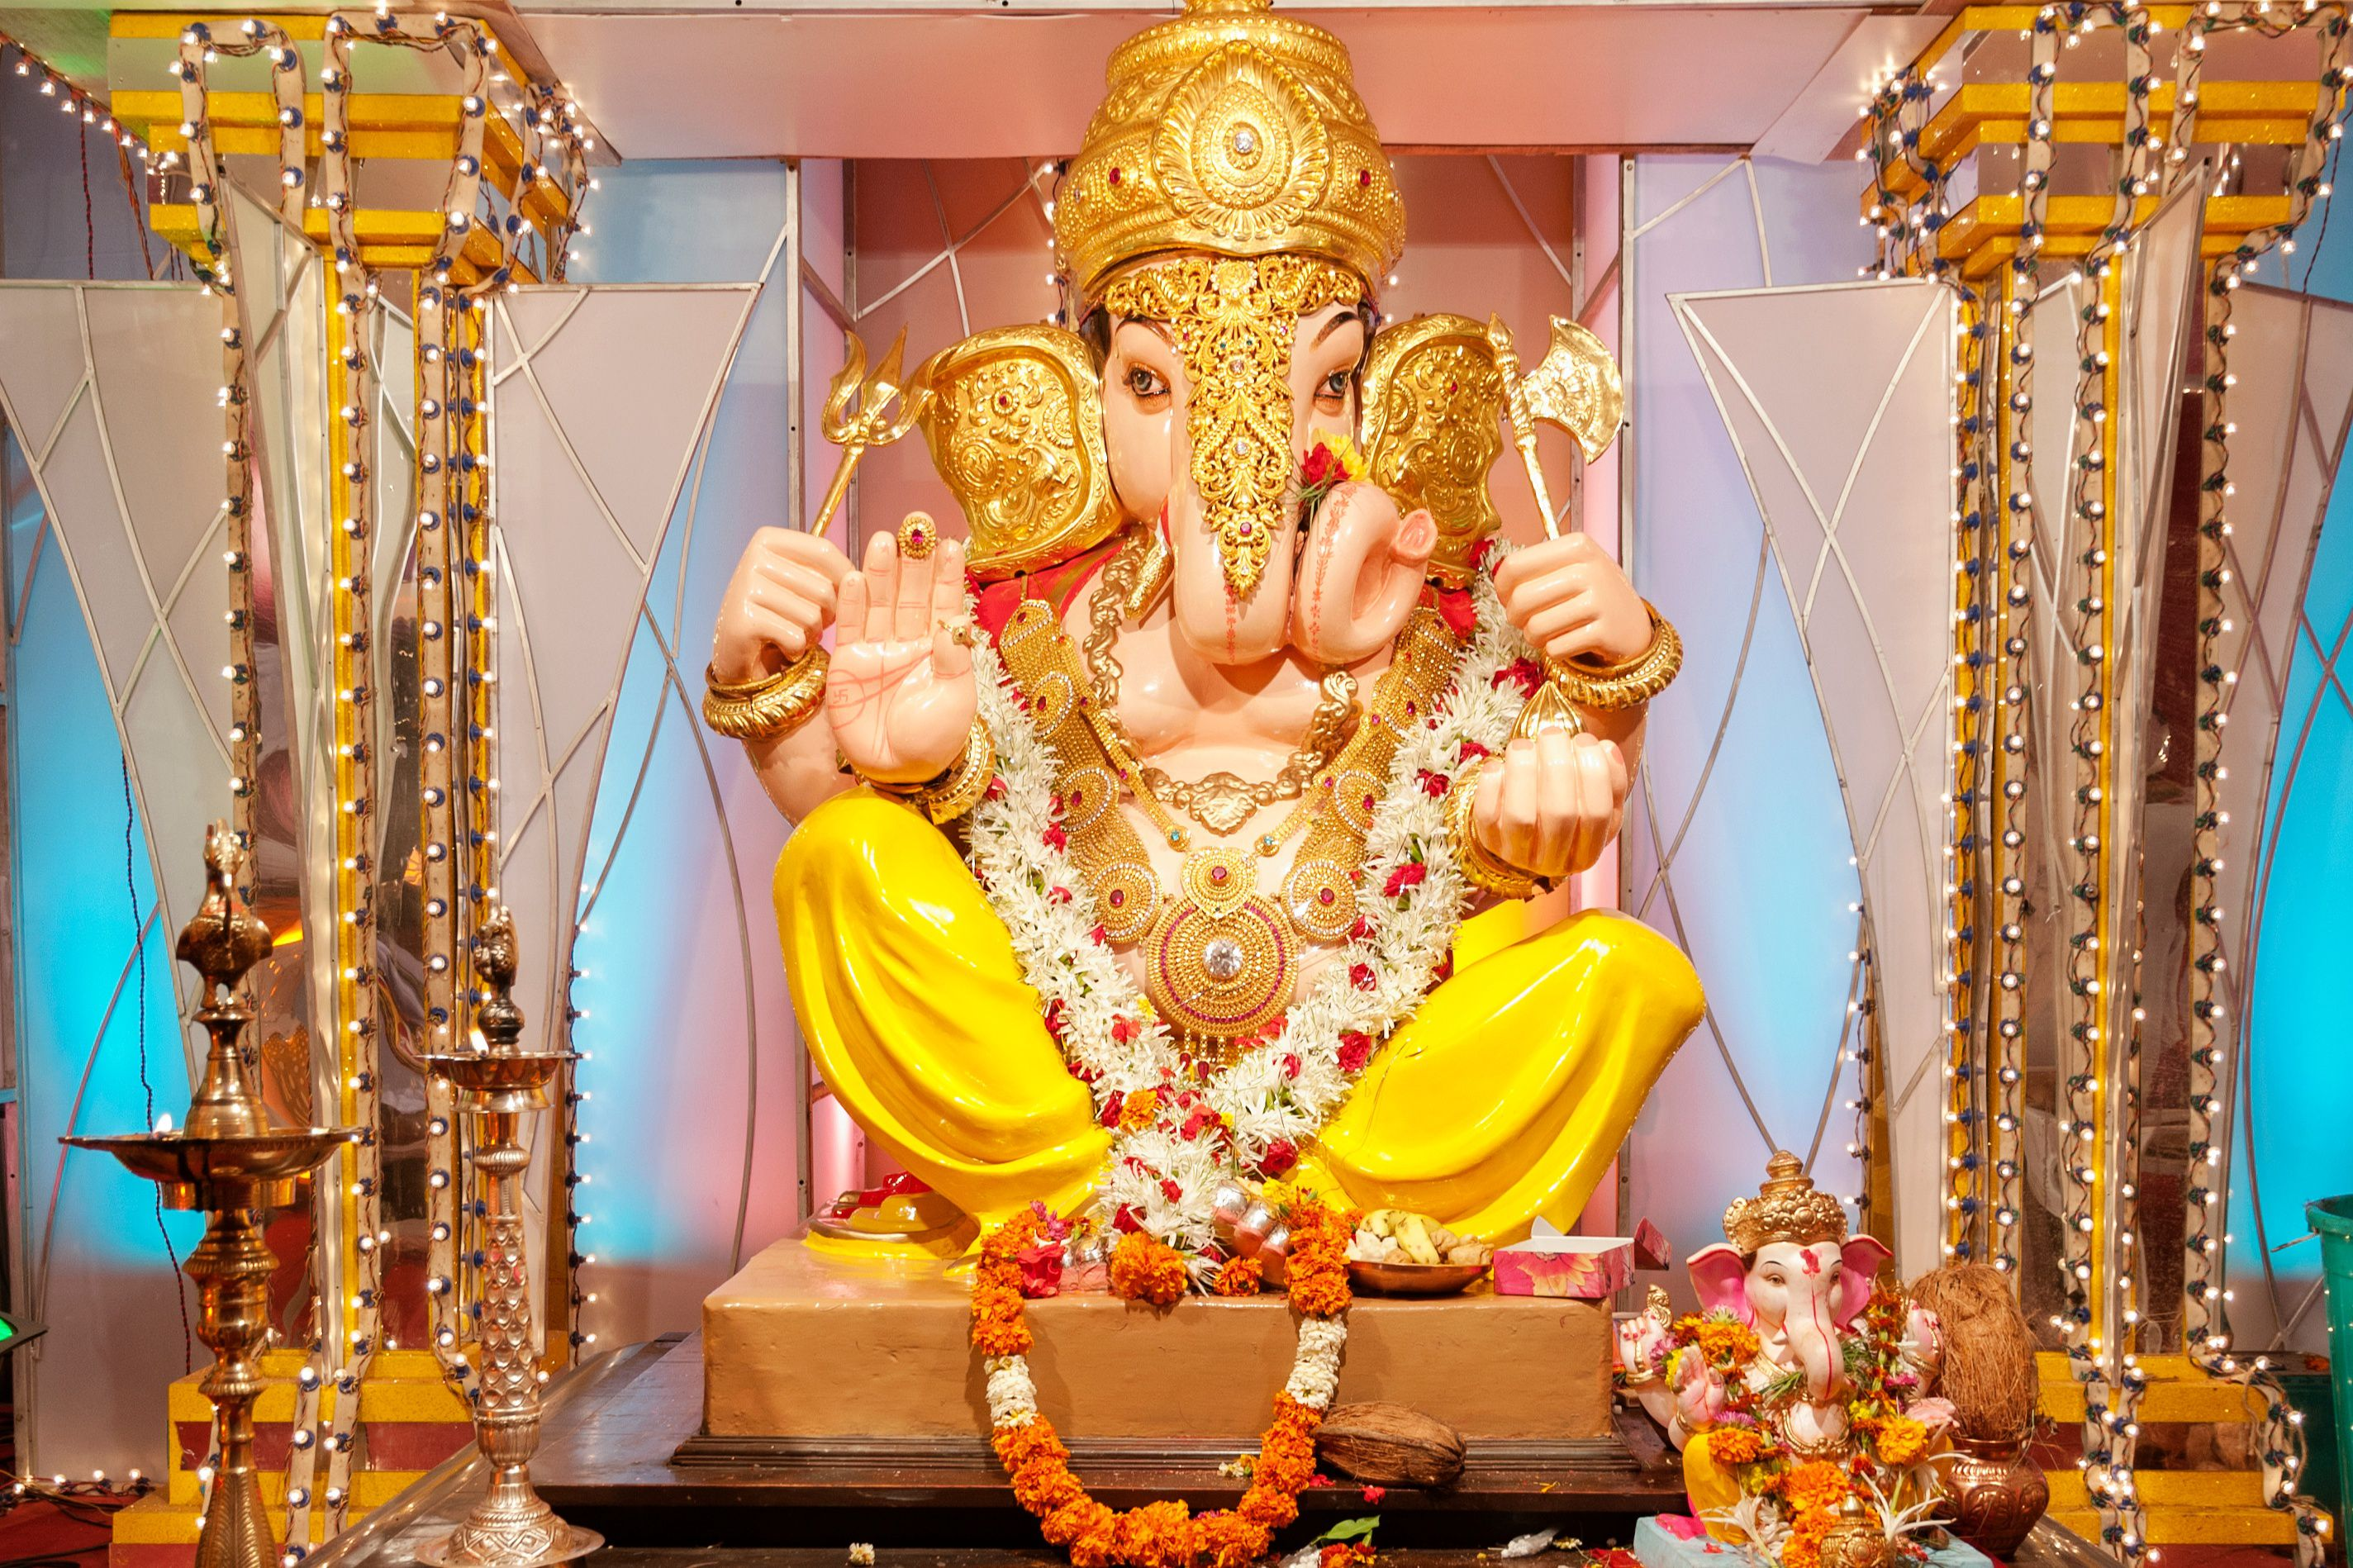 When is Ganesh Chaturthi in 2018 2019 and 2020